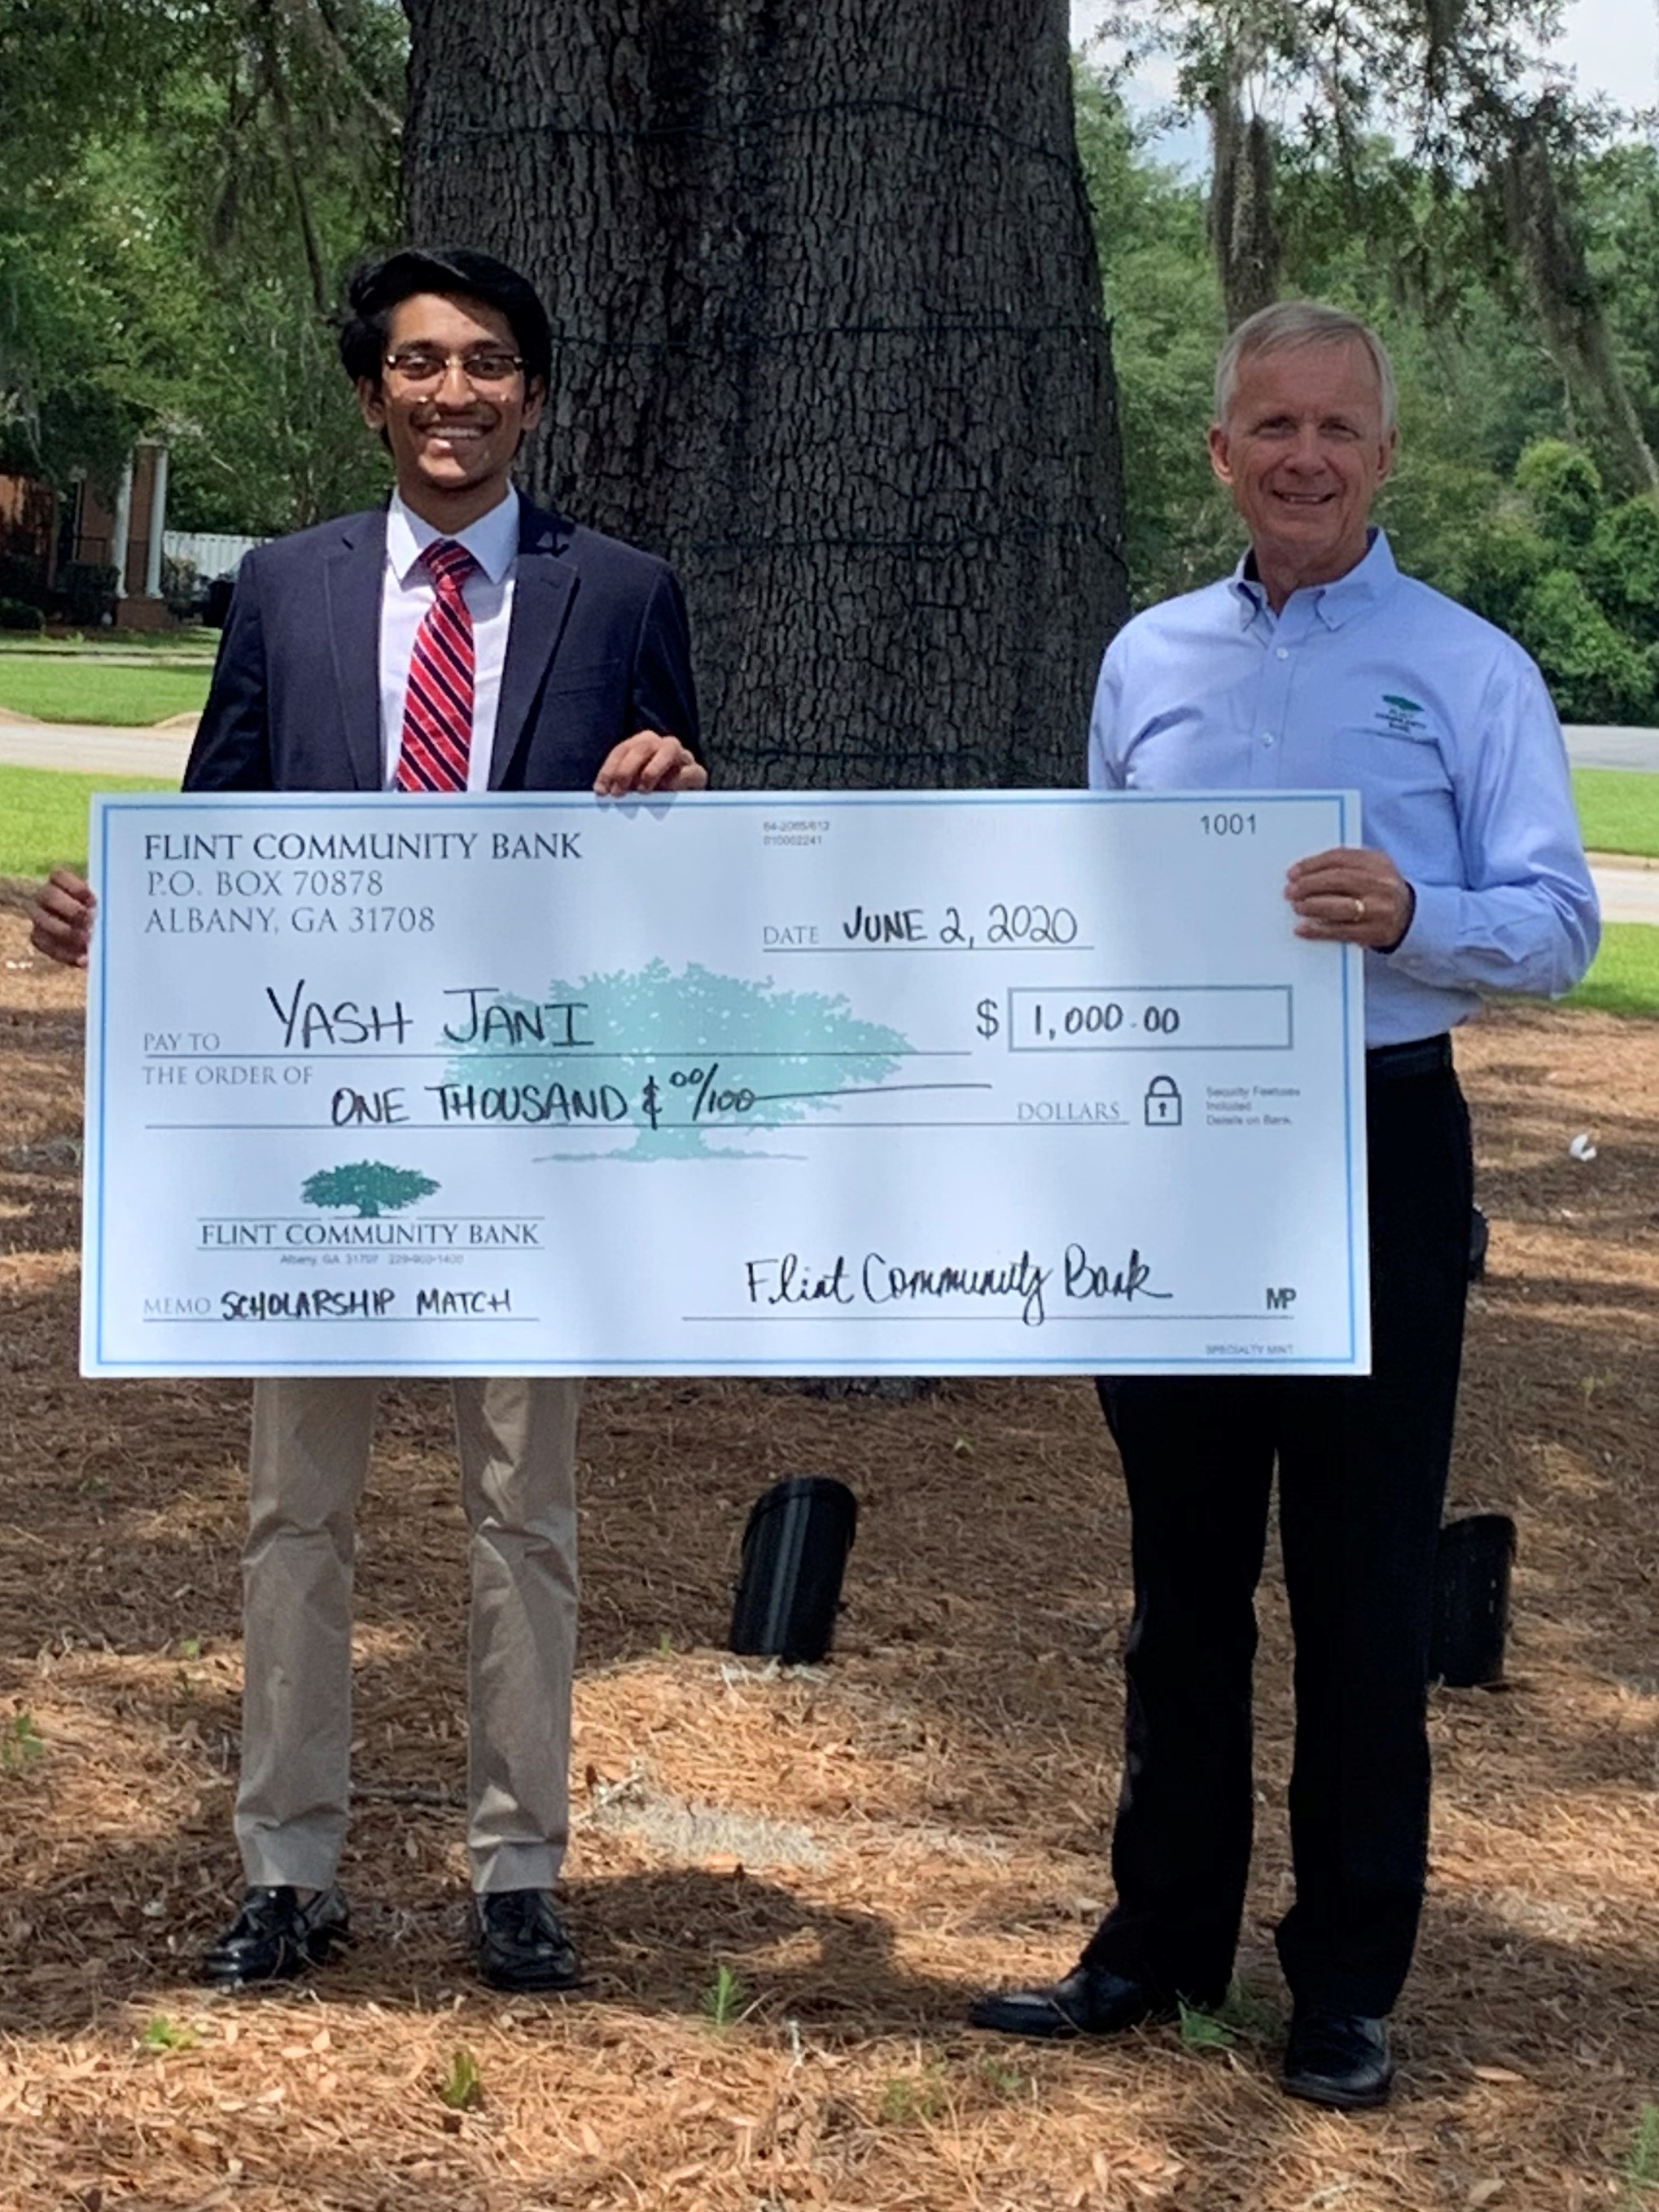 Yash Jani accepting scholarship funds